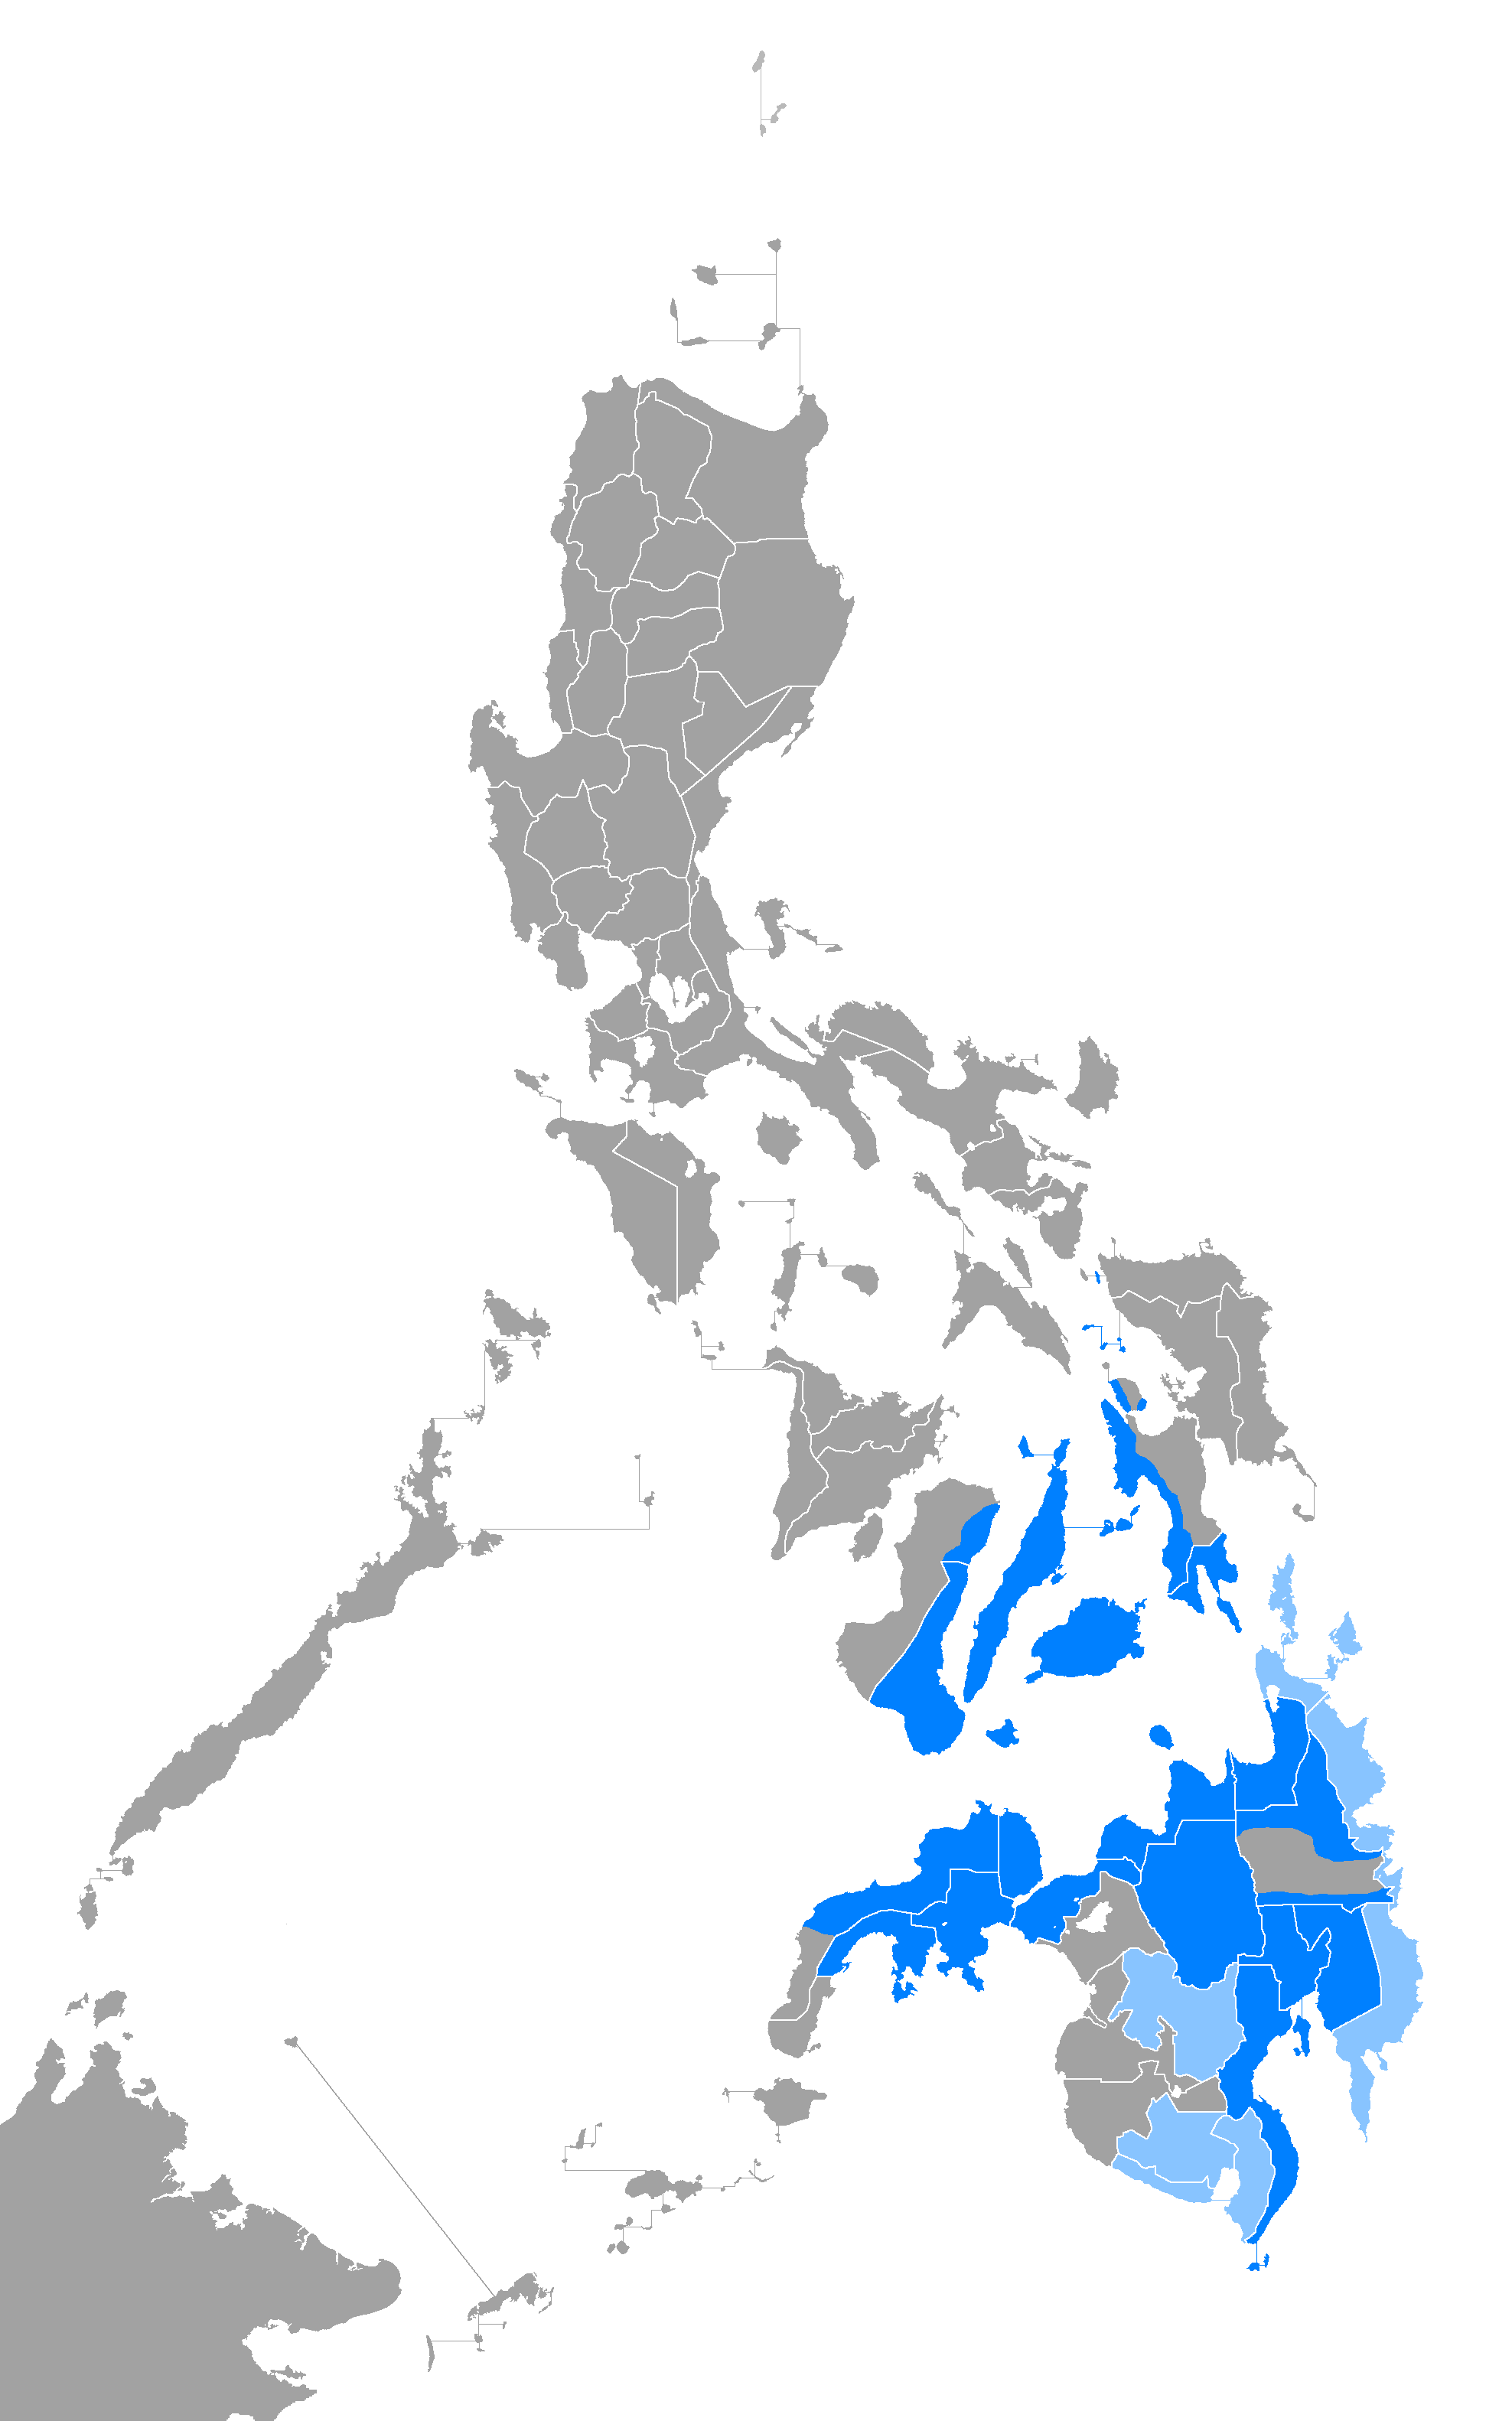 Depiction of Cebuano